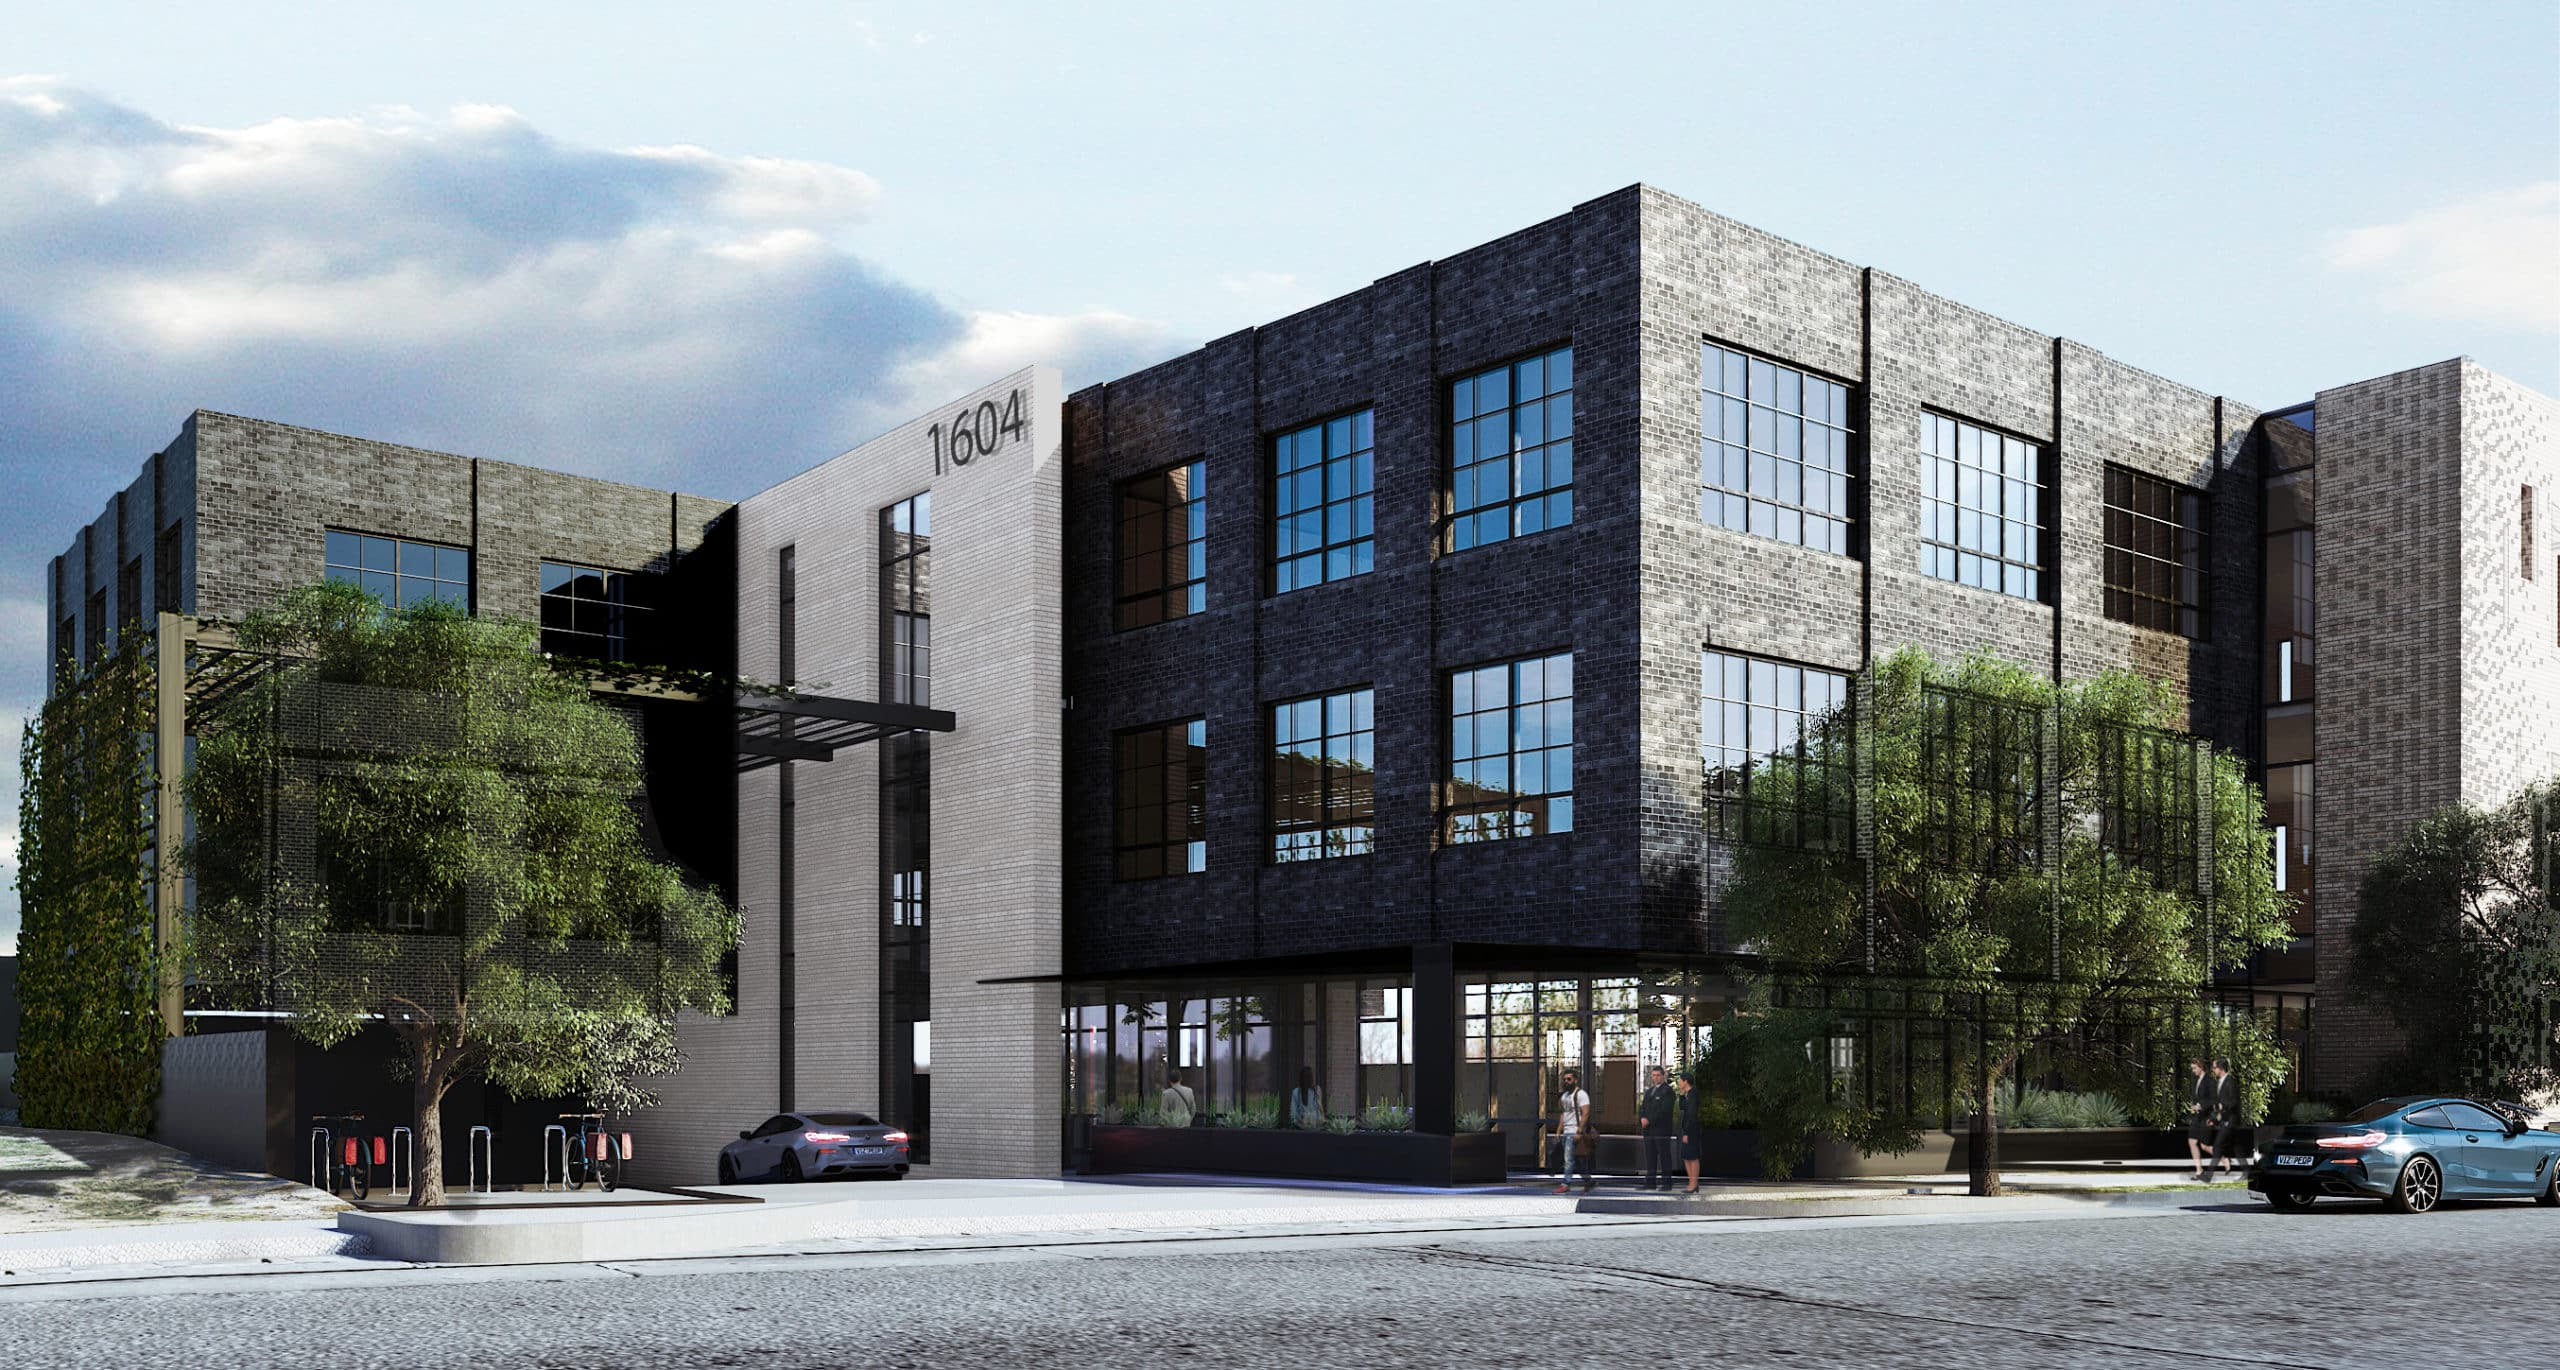 1608 W 5th St. | office projects central austin 2021